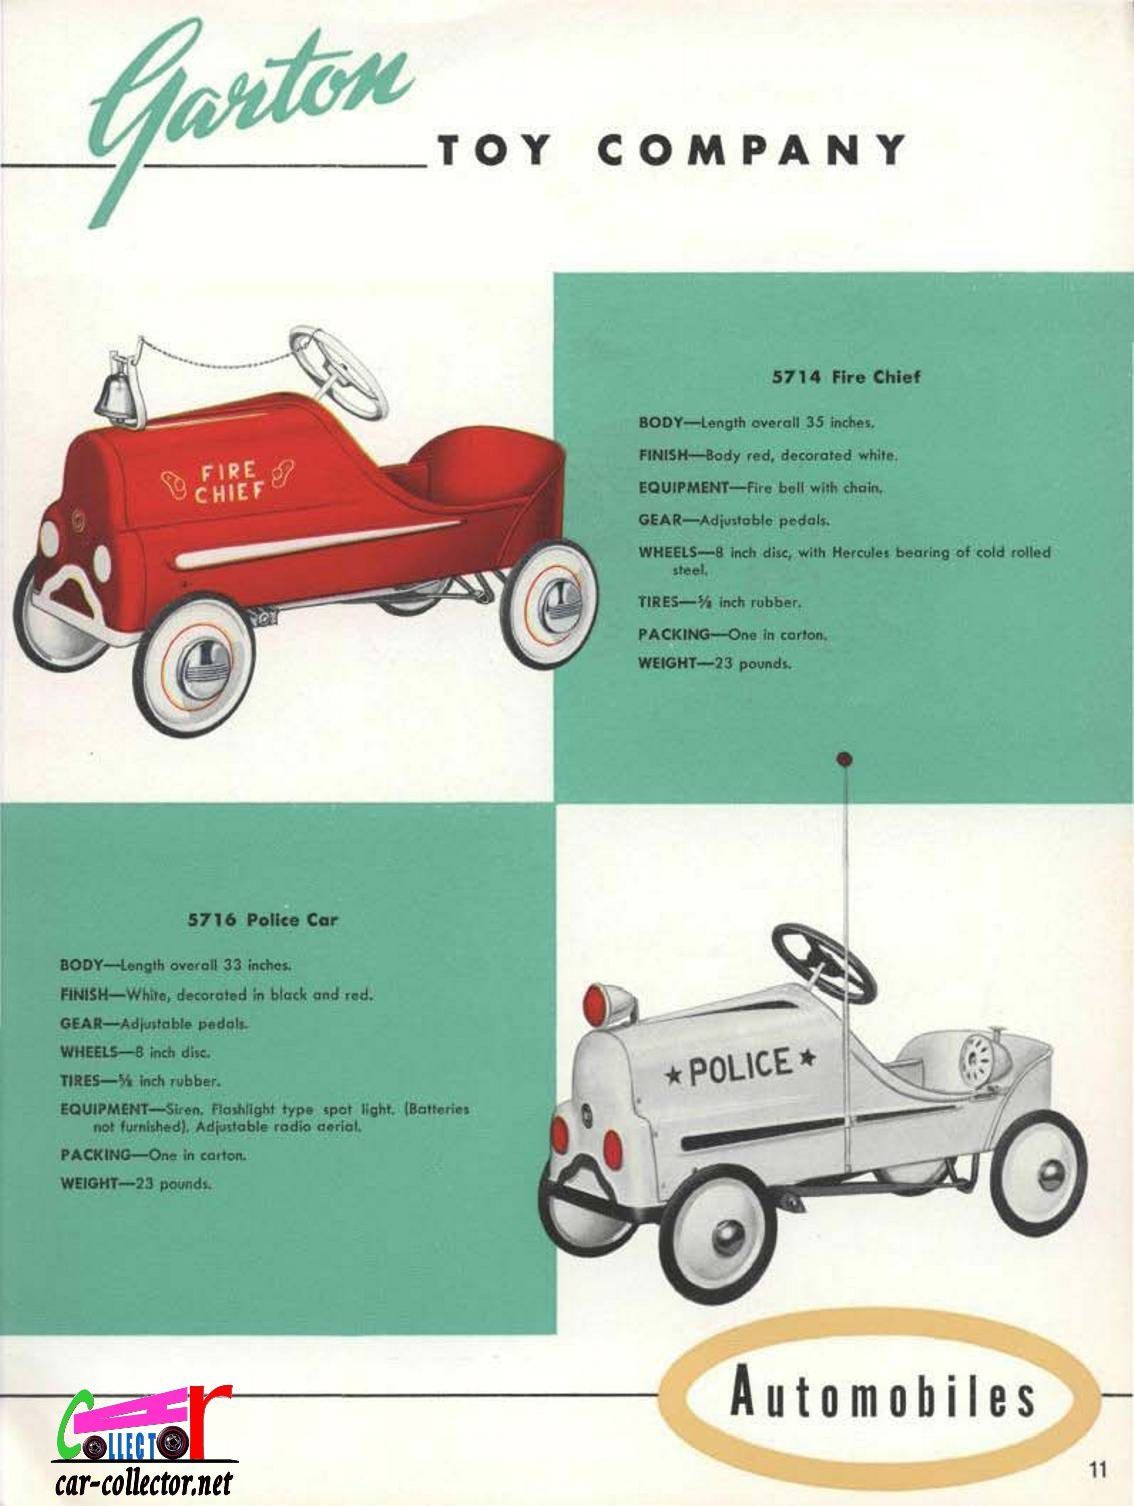 CATALOGUE GARTON TOY COMPANY 1953 - VOITURES A PEDALES